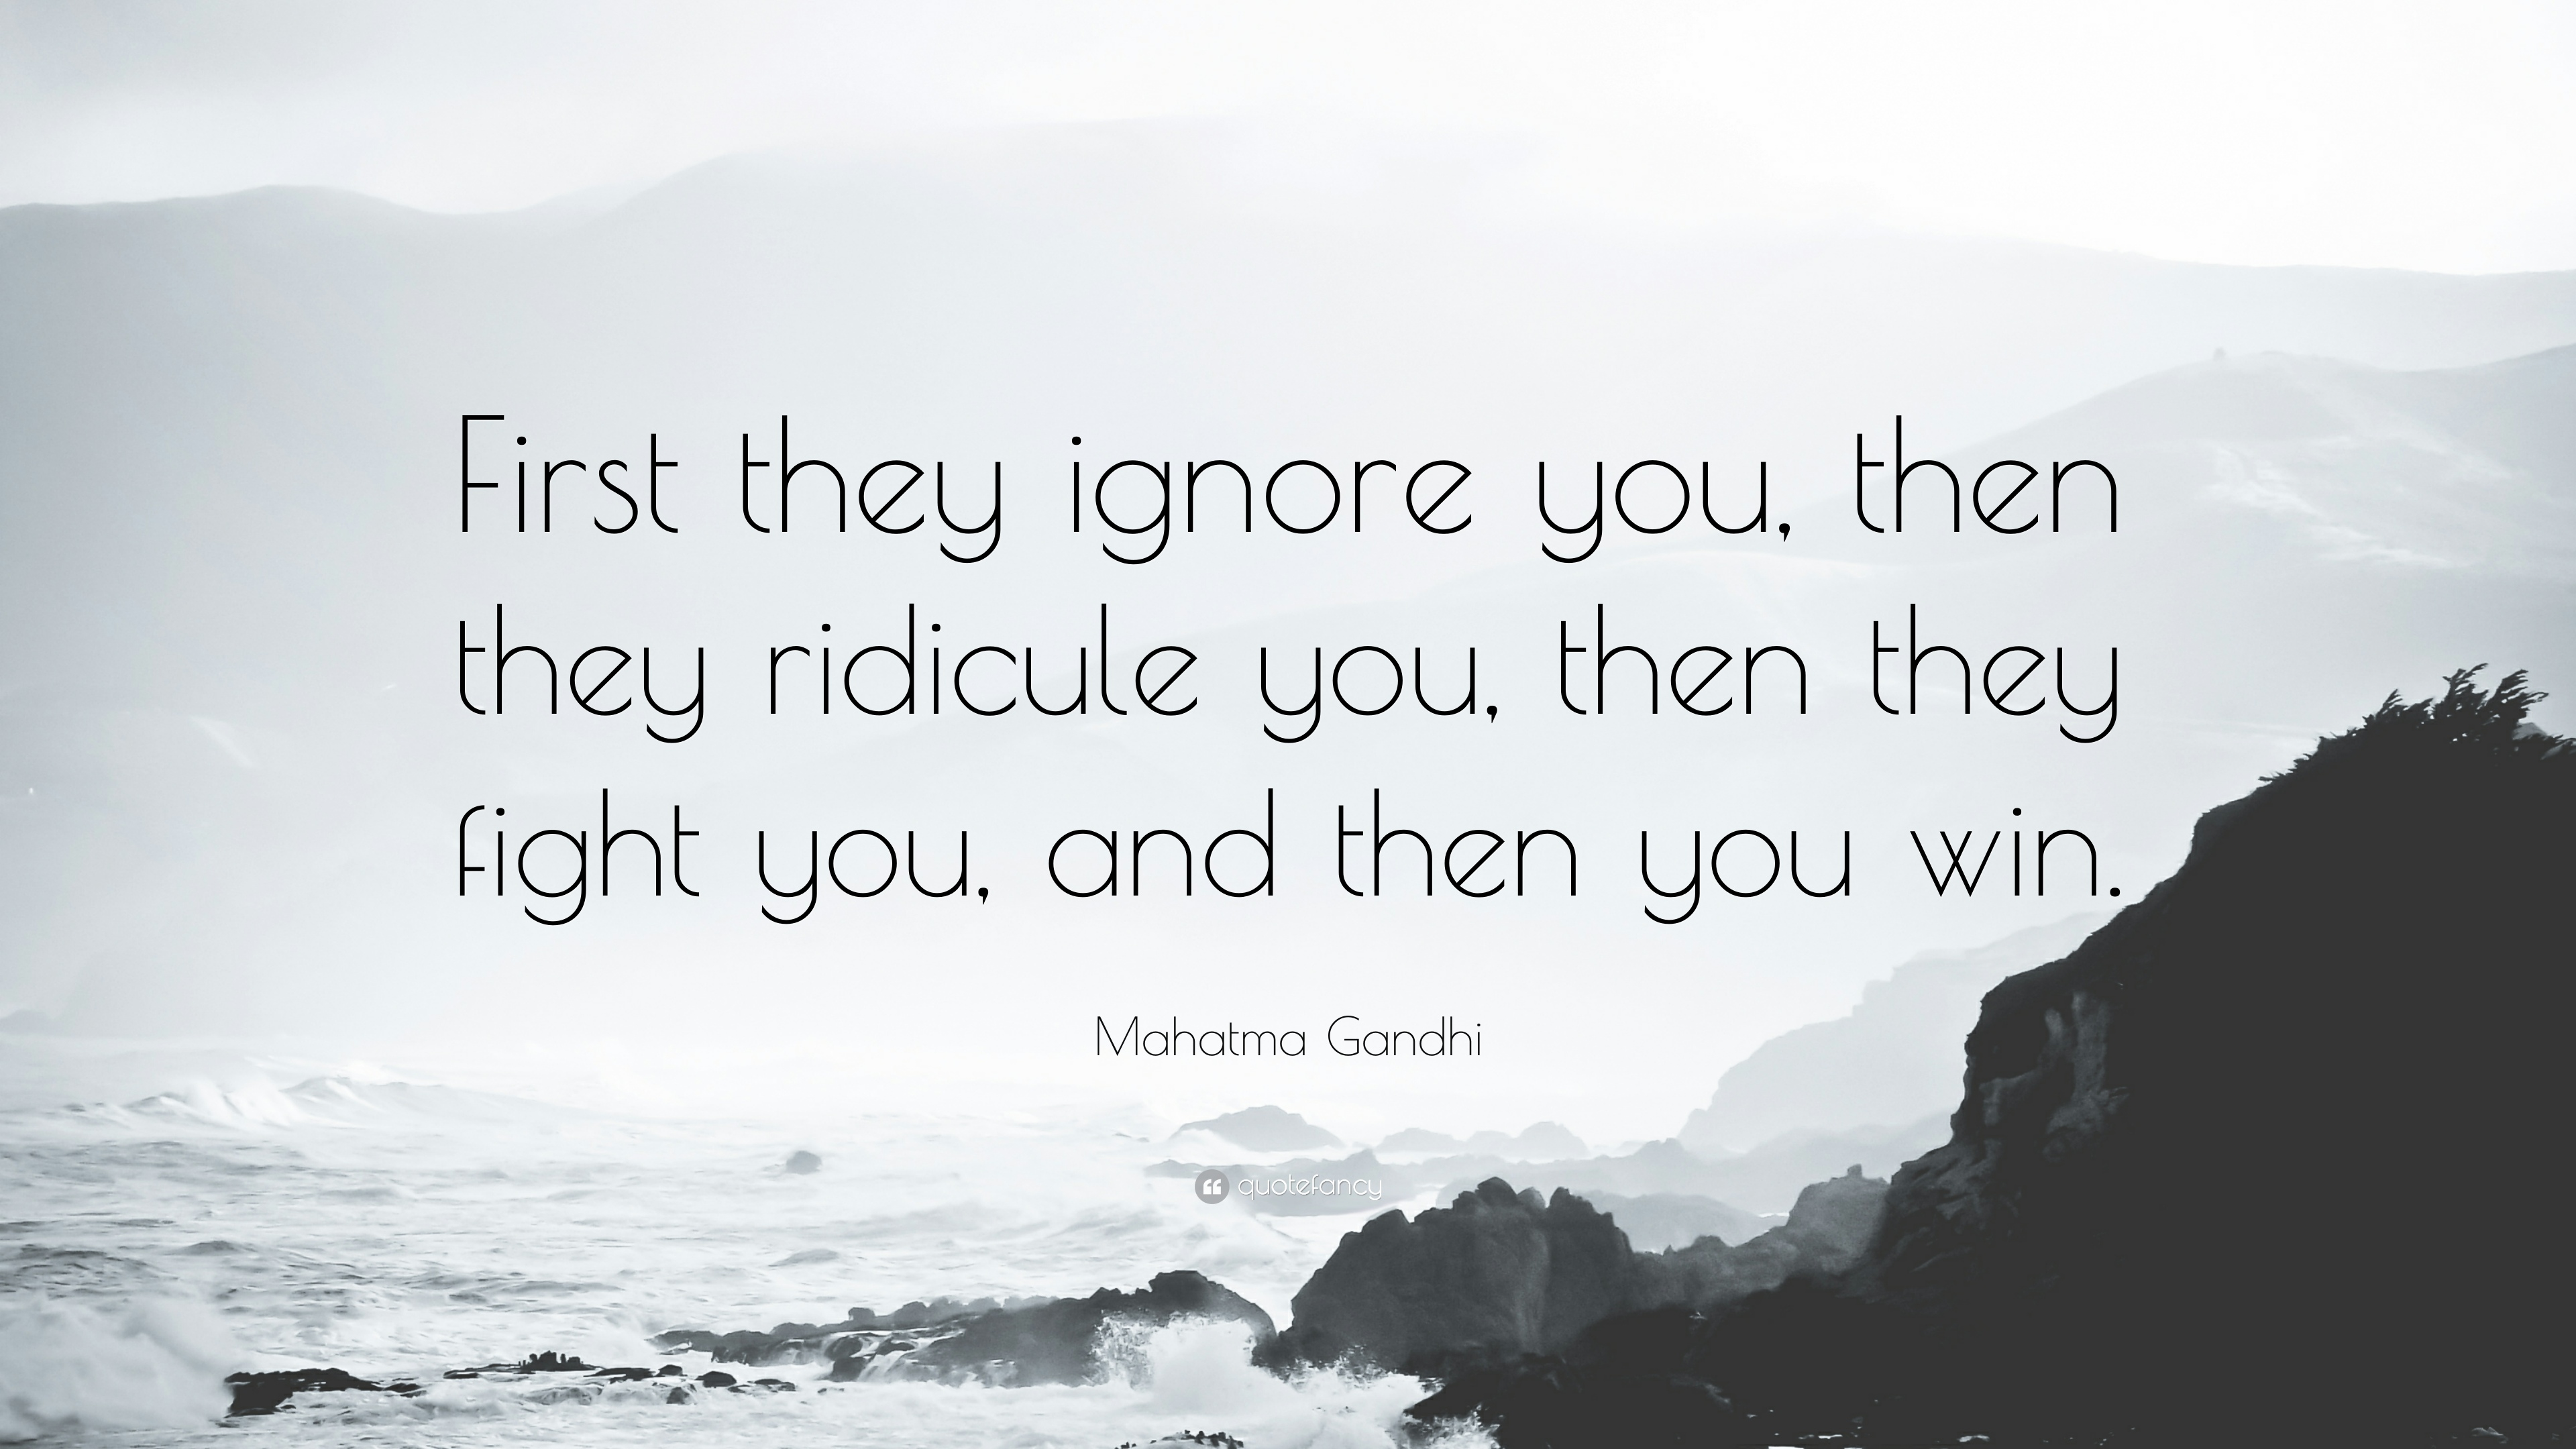 [Image] Powerful quote.